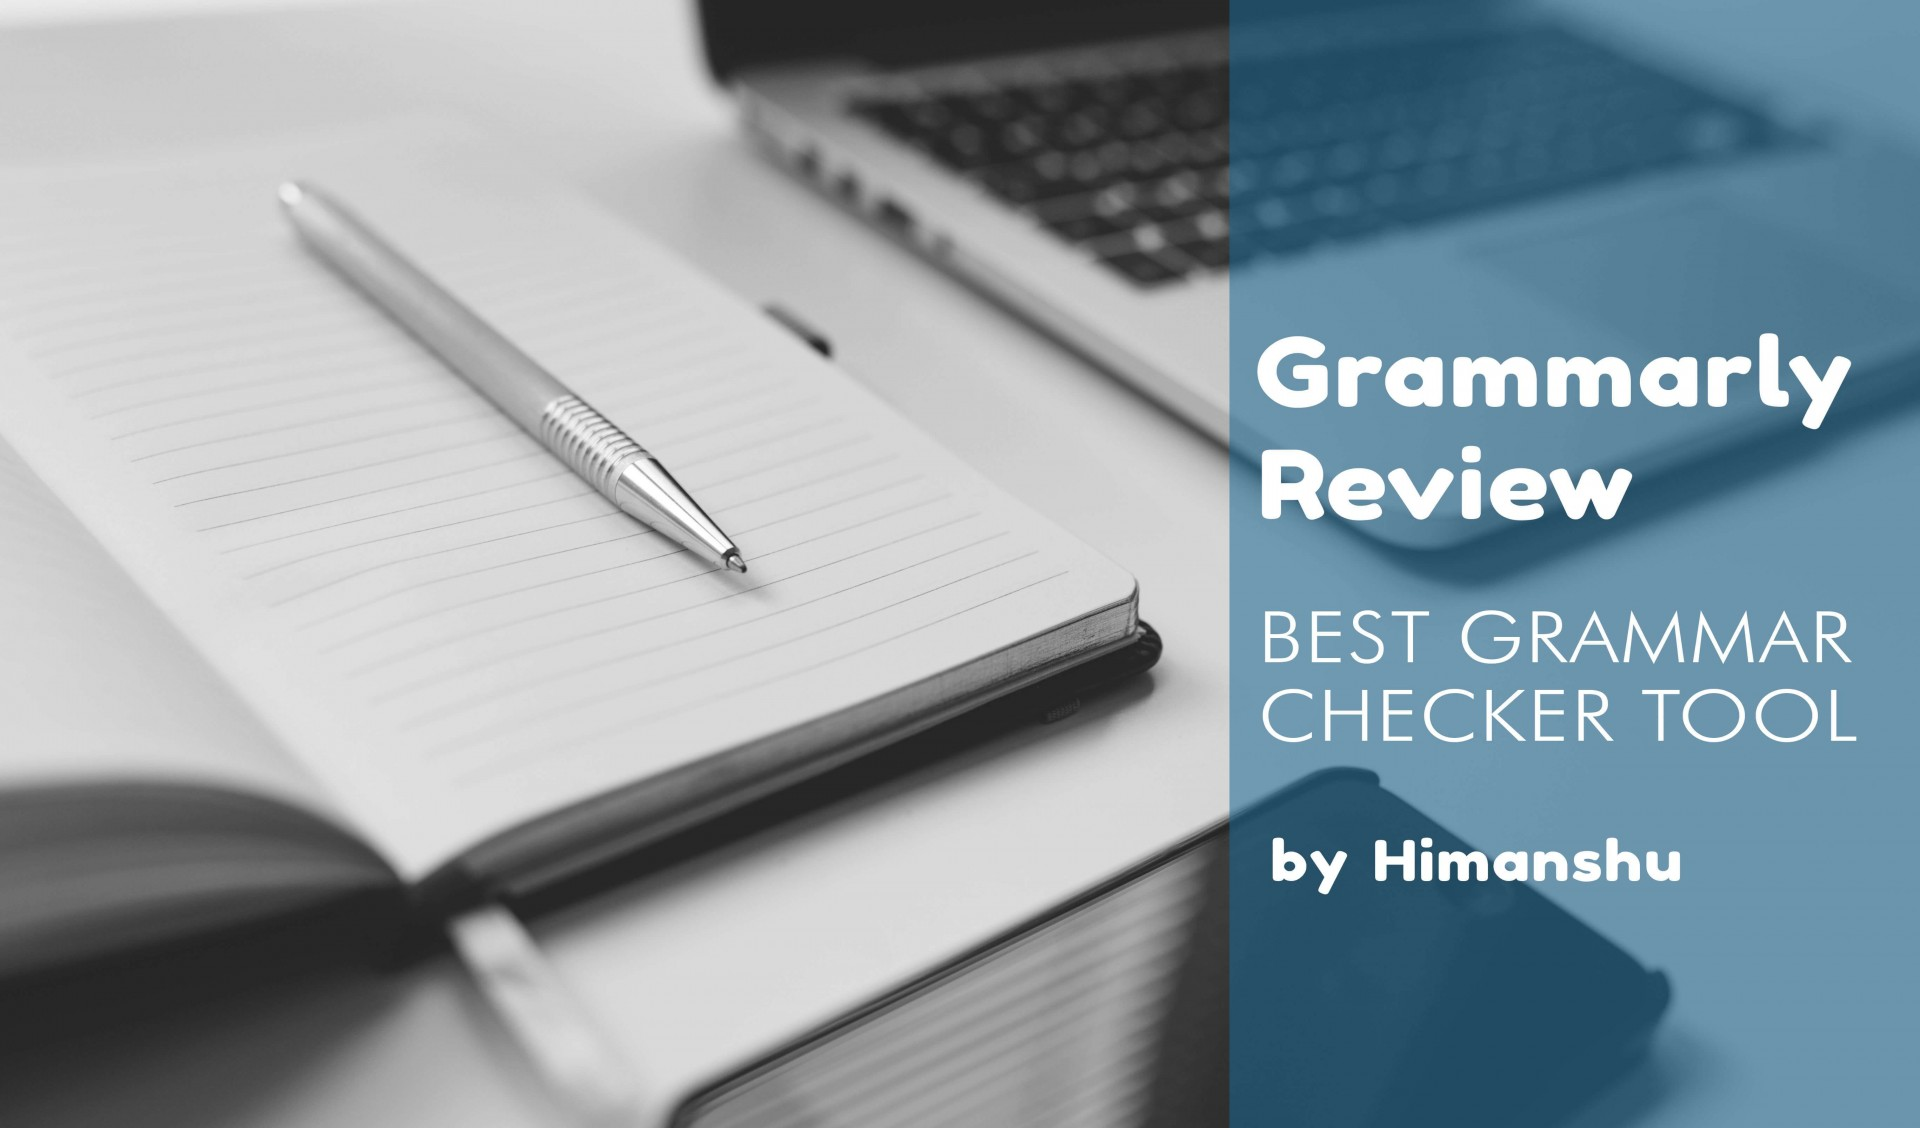 015 Essay Example Grab My Checker Grammar Grammarly Review Best Write Online Re Surprising Discount Codes 1920